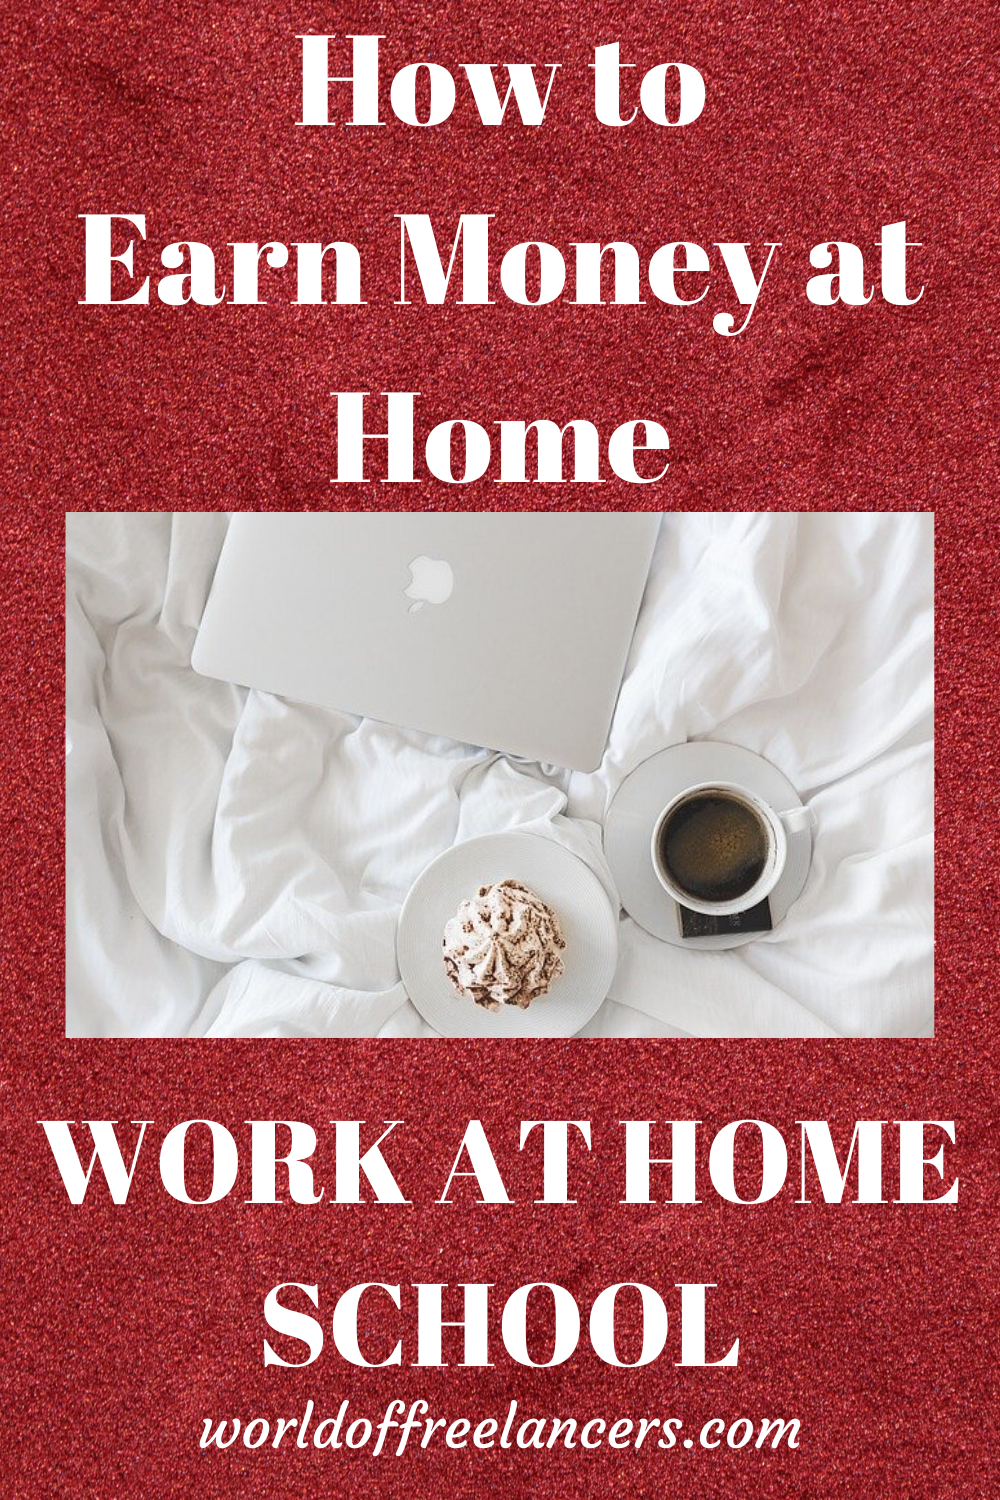 How to Earn Money at Home with Work at Home School